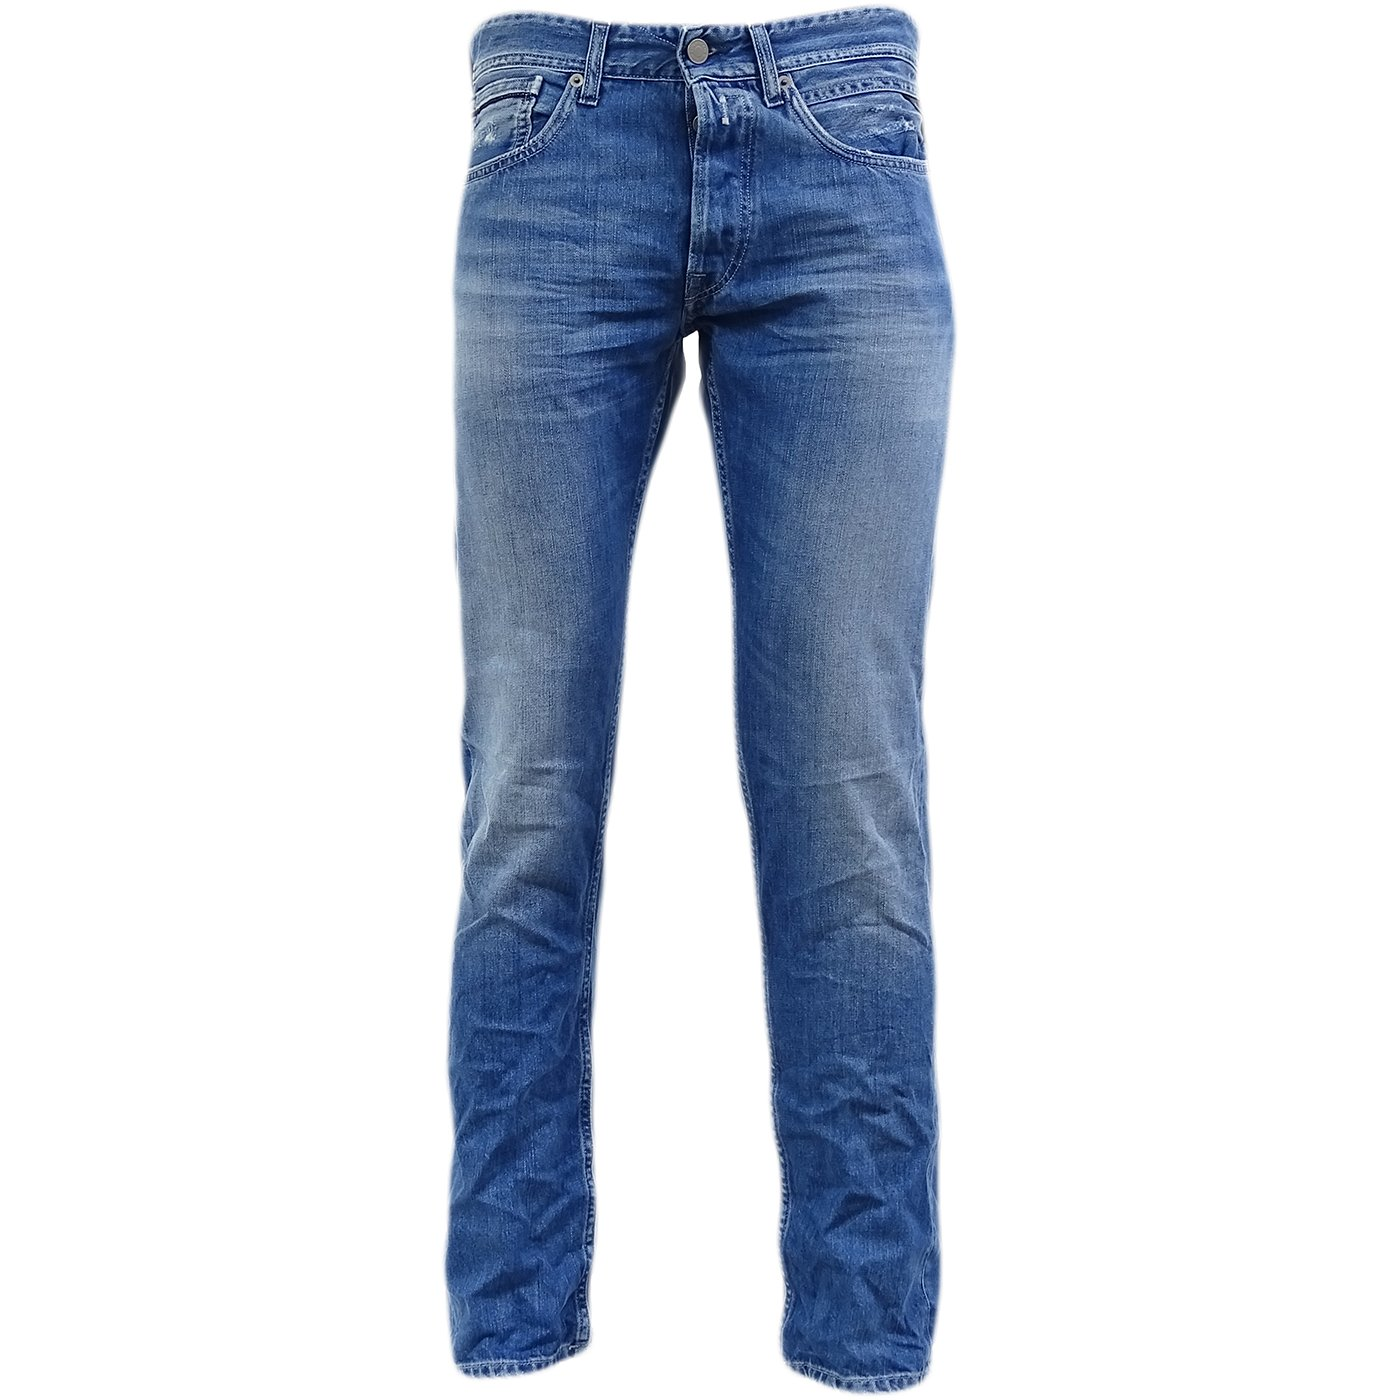 Replay Blue Grover Tapered Leg Jean/Denim Pants - Ma972-12C-957-010 34/30